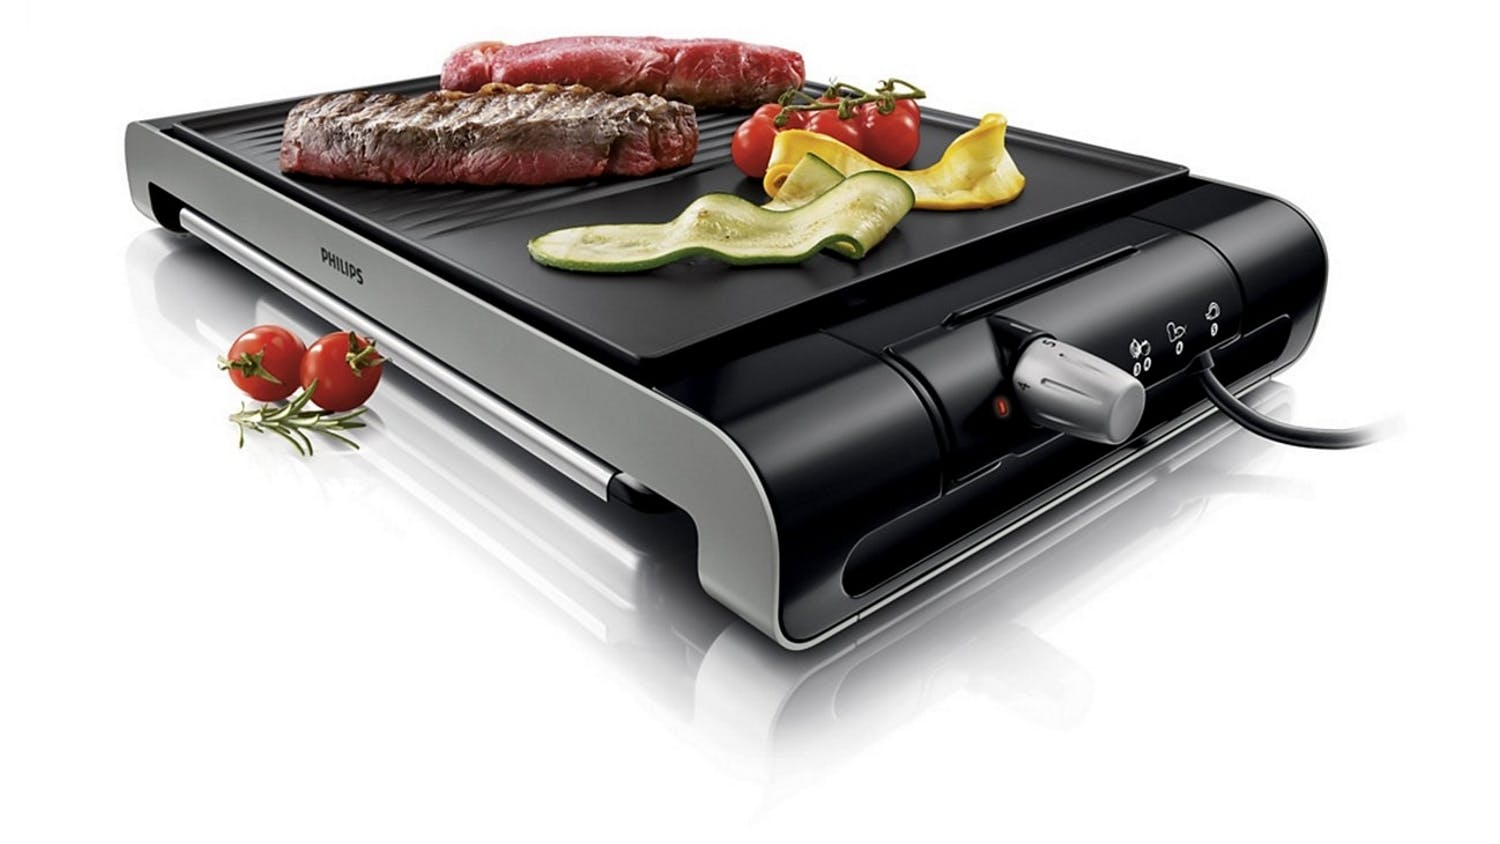 philips table grill harvey norman singapore